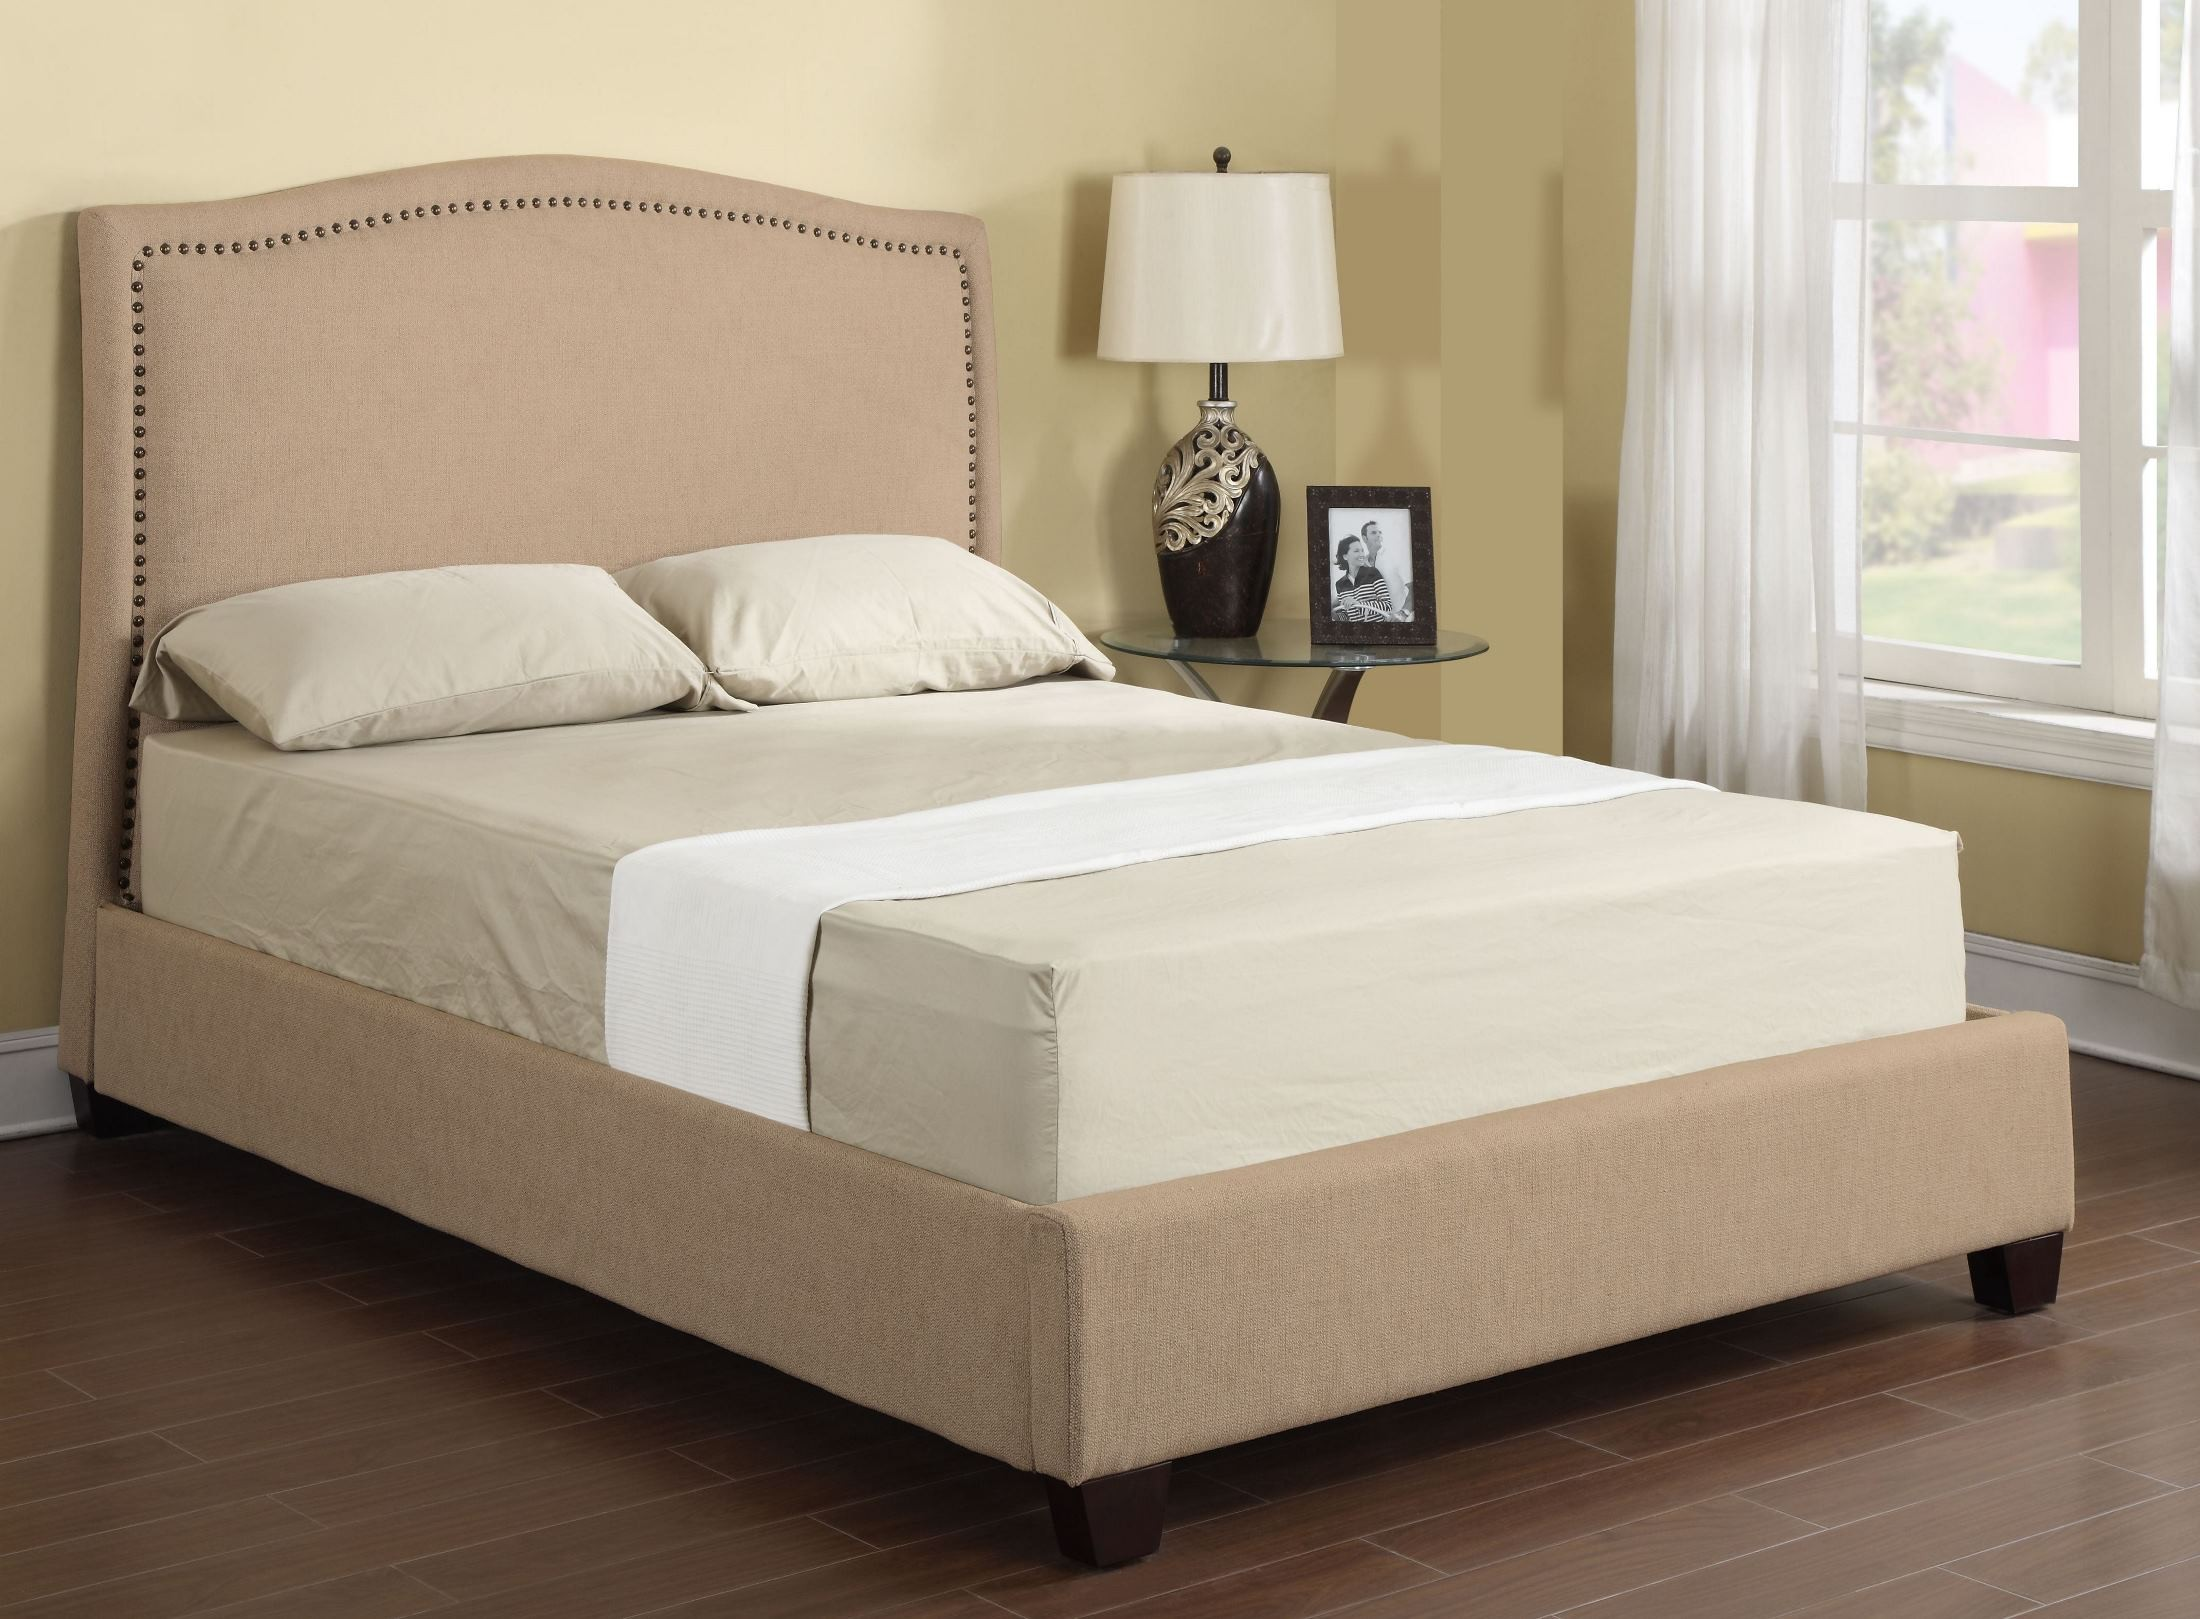 Abigail Tan Fabric King Upholstered Bed From Emerald Home